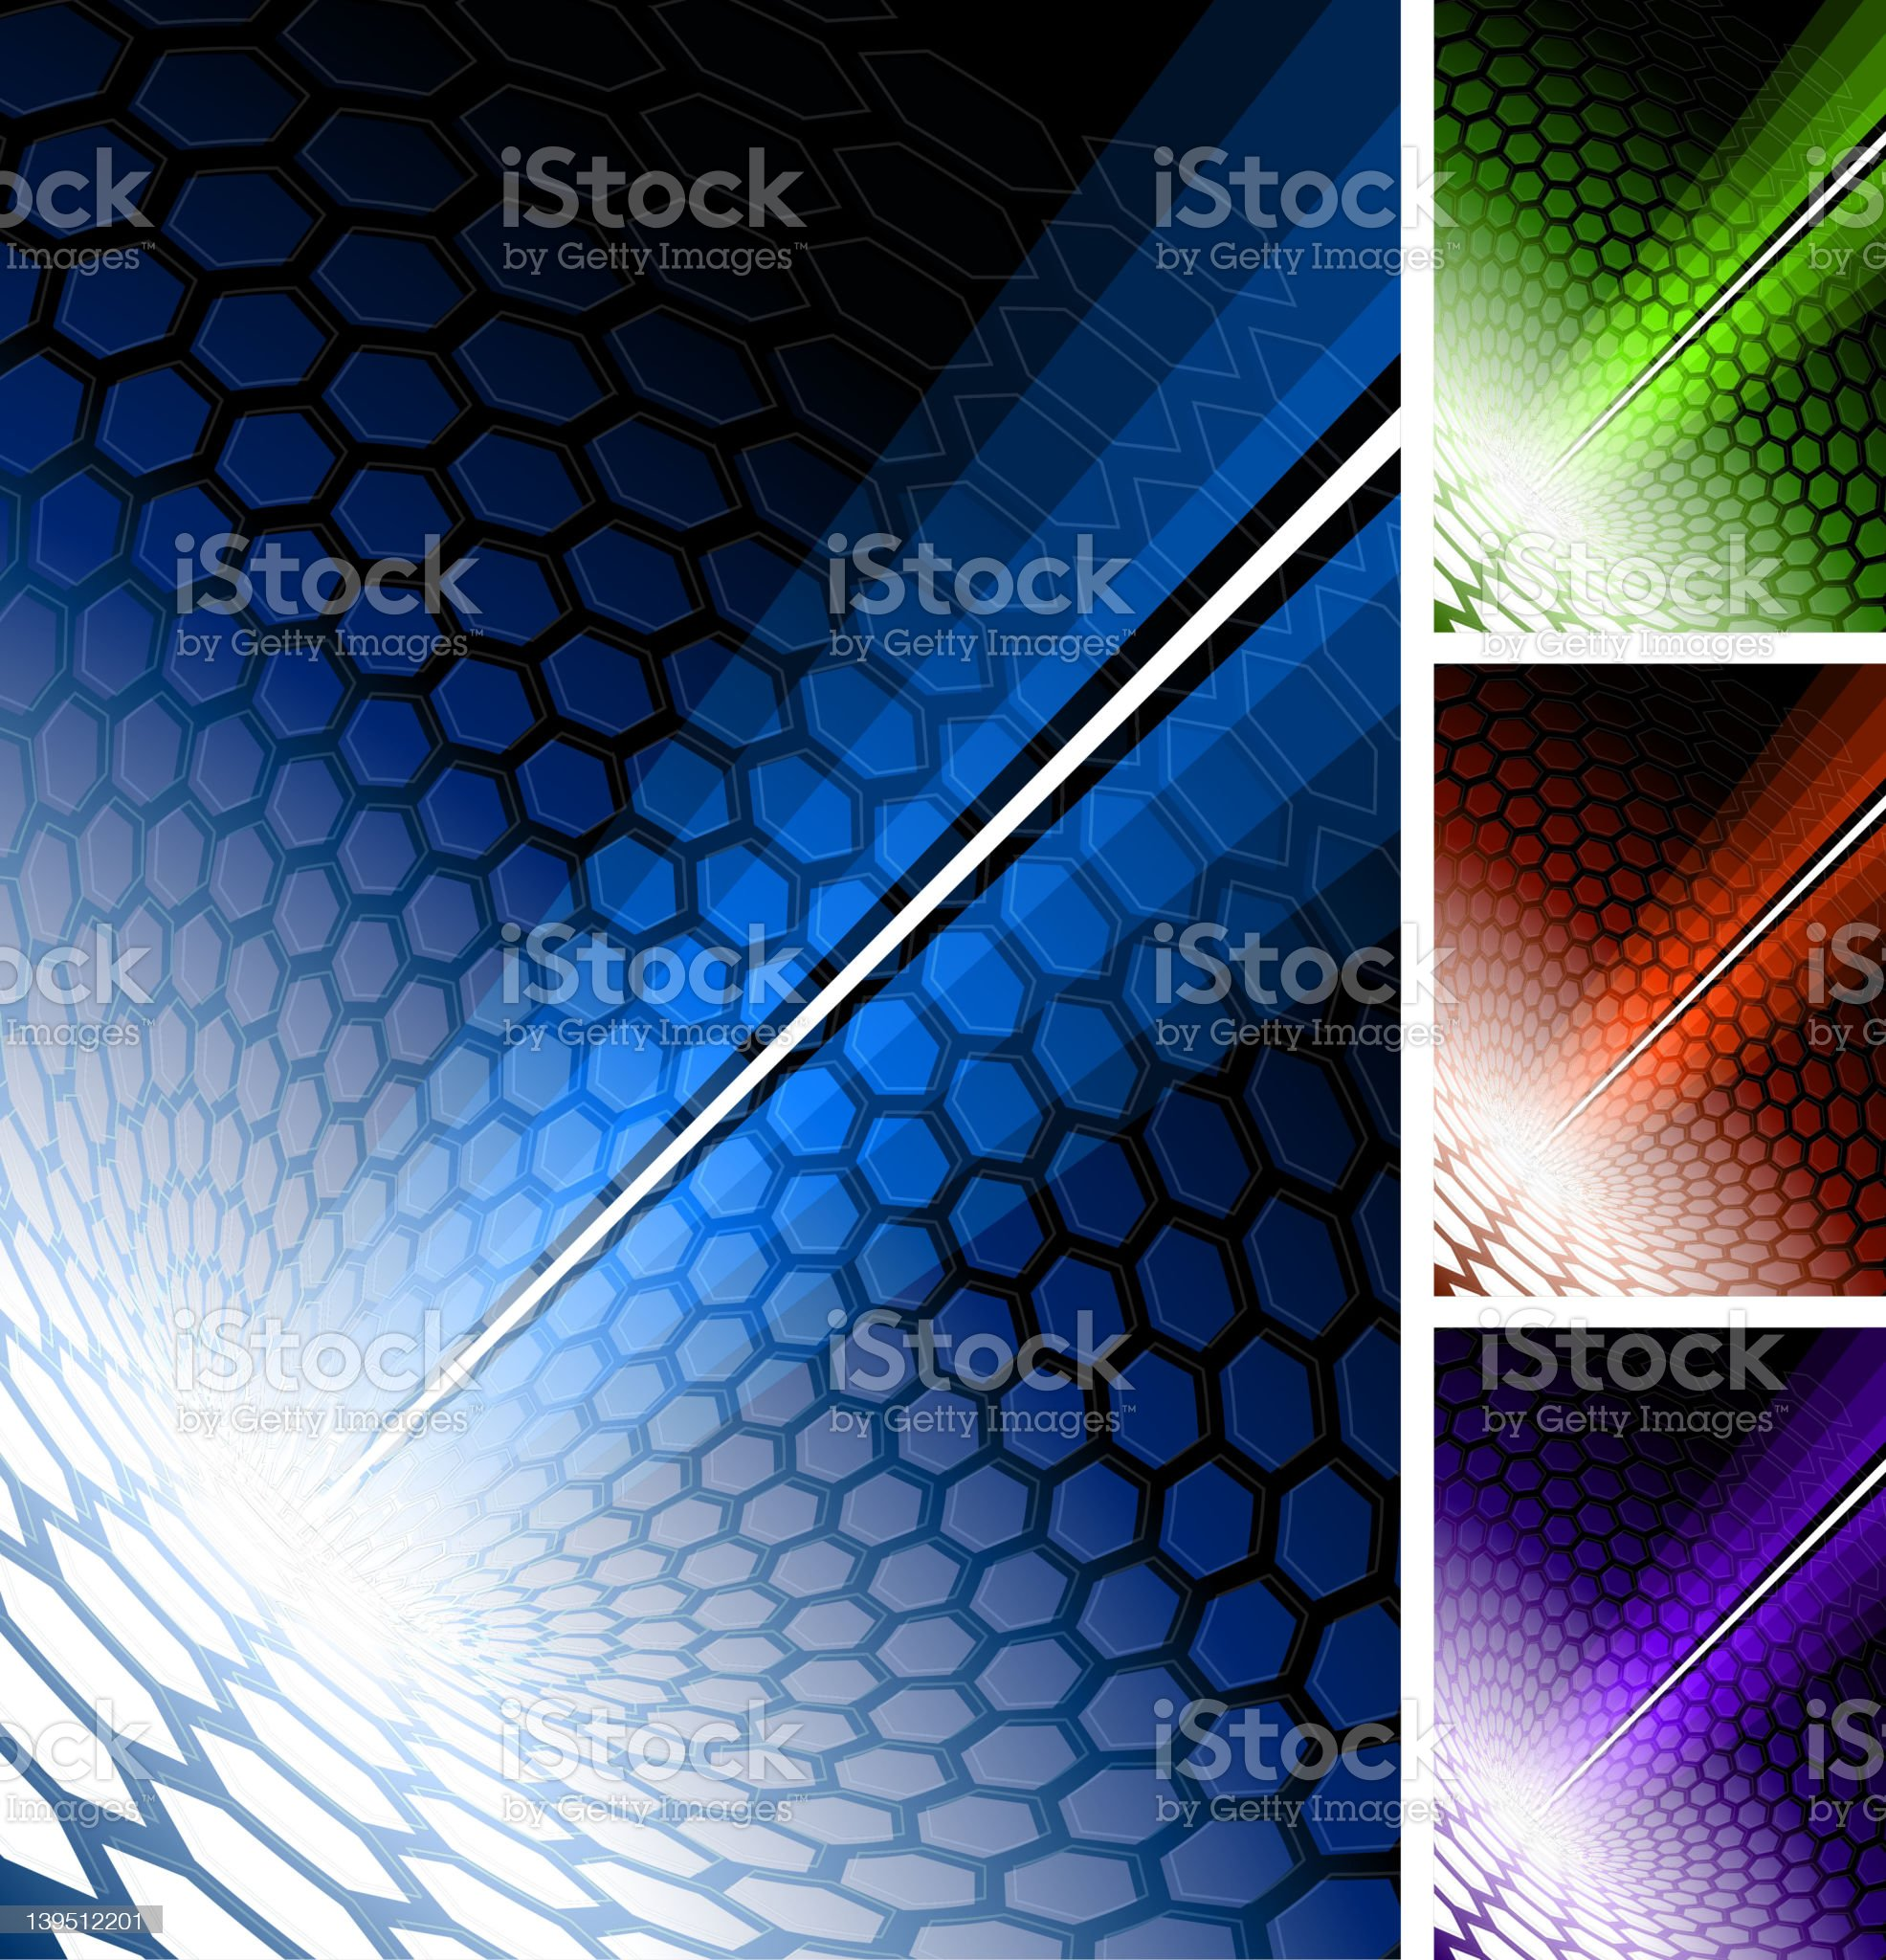 modern hexagon Background with abstract light royalty-free stock vector art